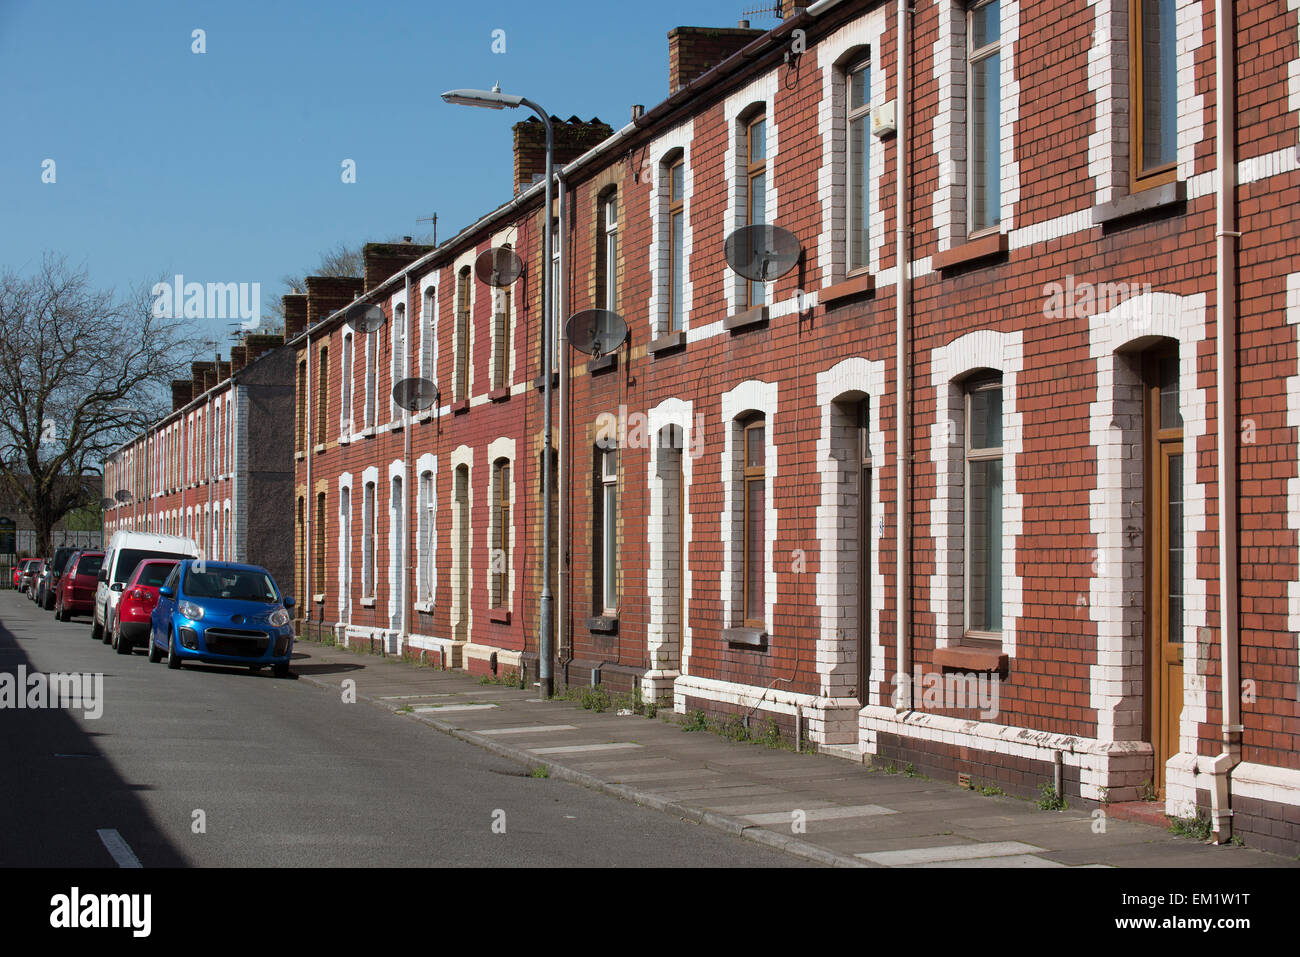 Row of terraced houses in Port Talbot South Wales UK - Stock Image